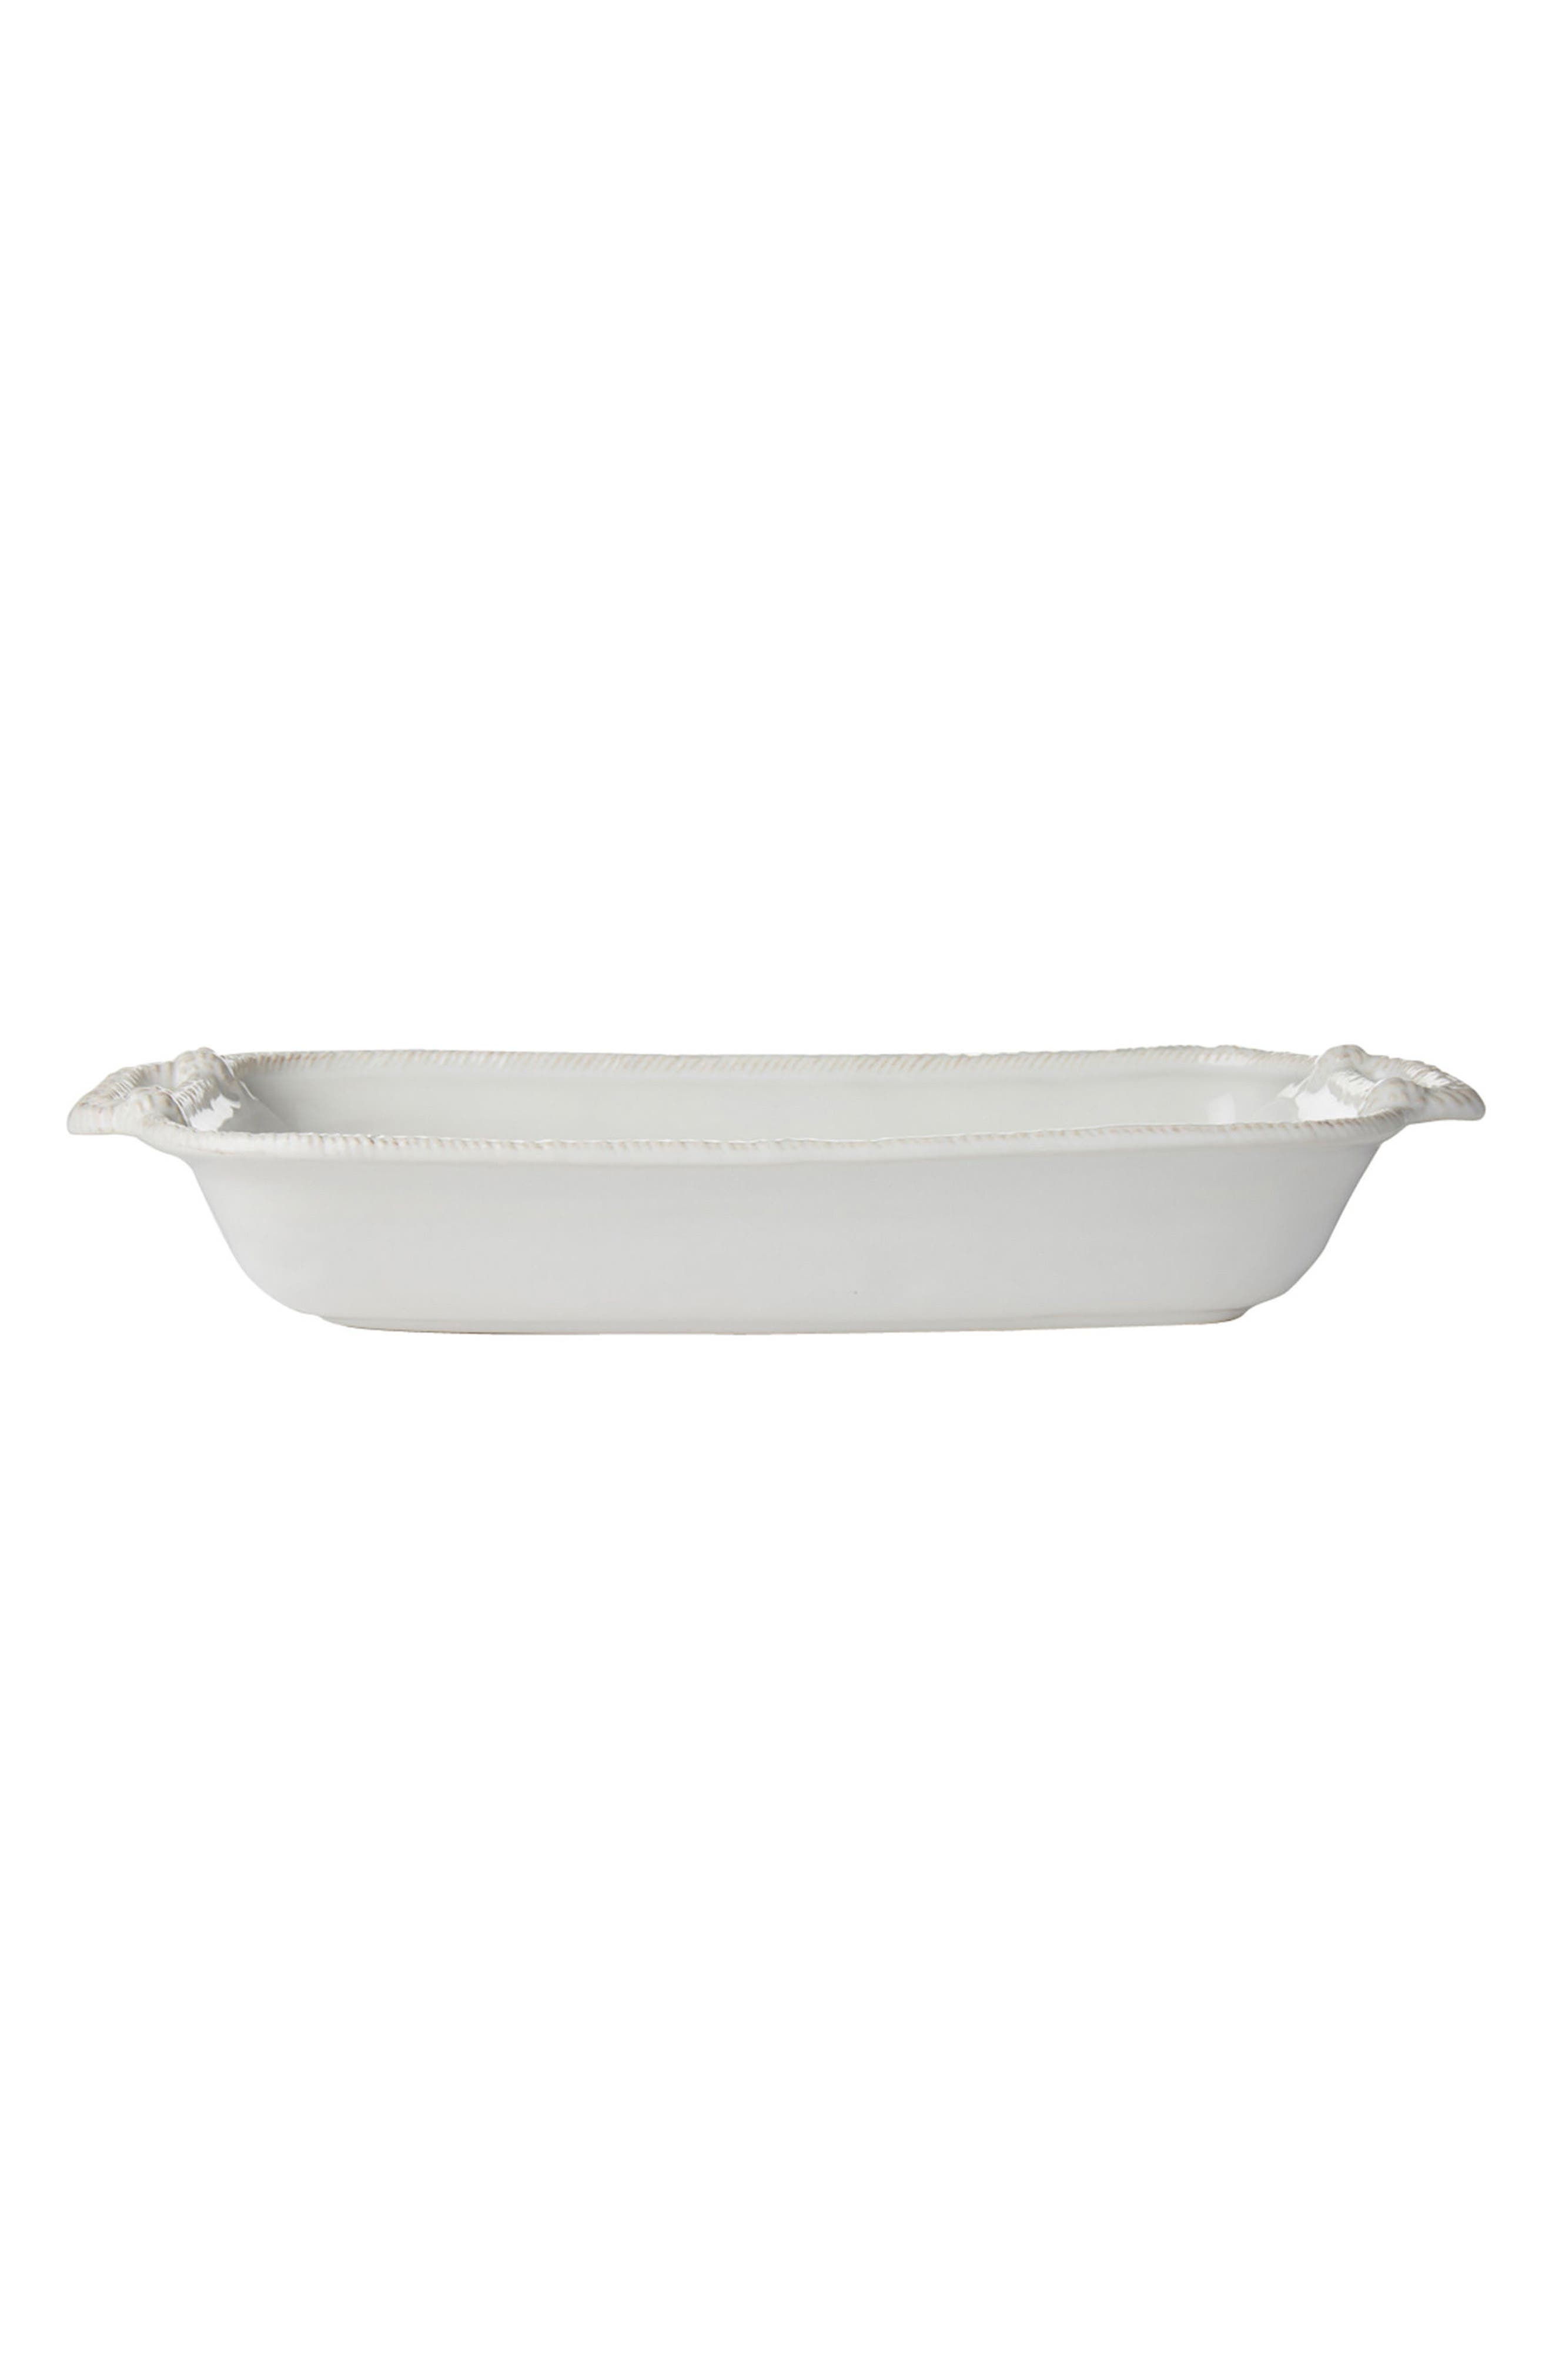 Le Panier 2-Quart Rectangular Baking Dish,                             Alternate thumbnail 2, color,                             WHITEWASH